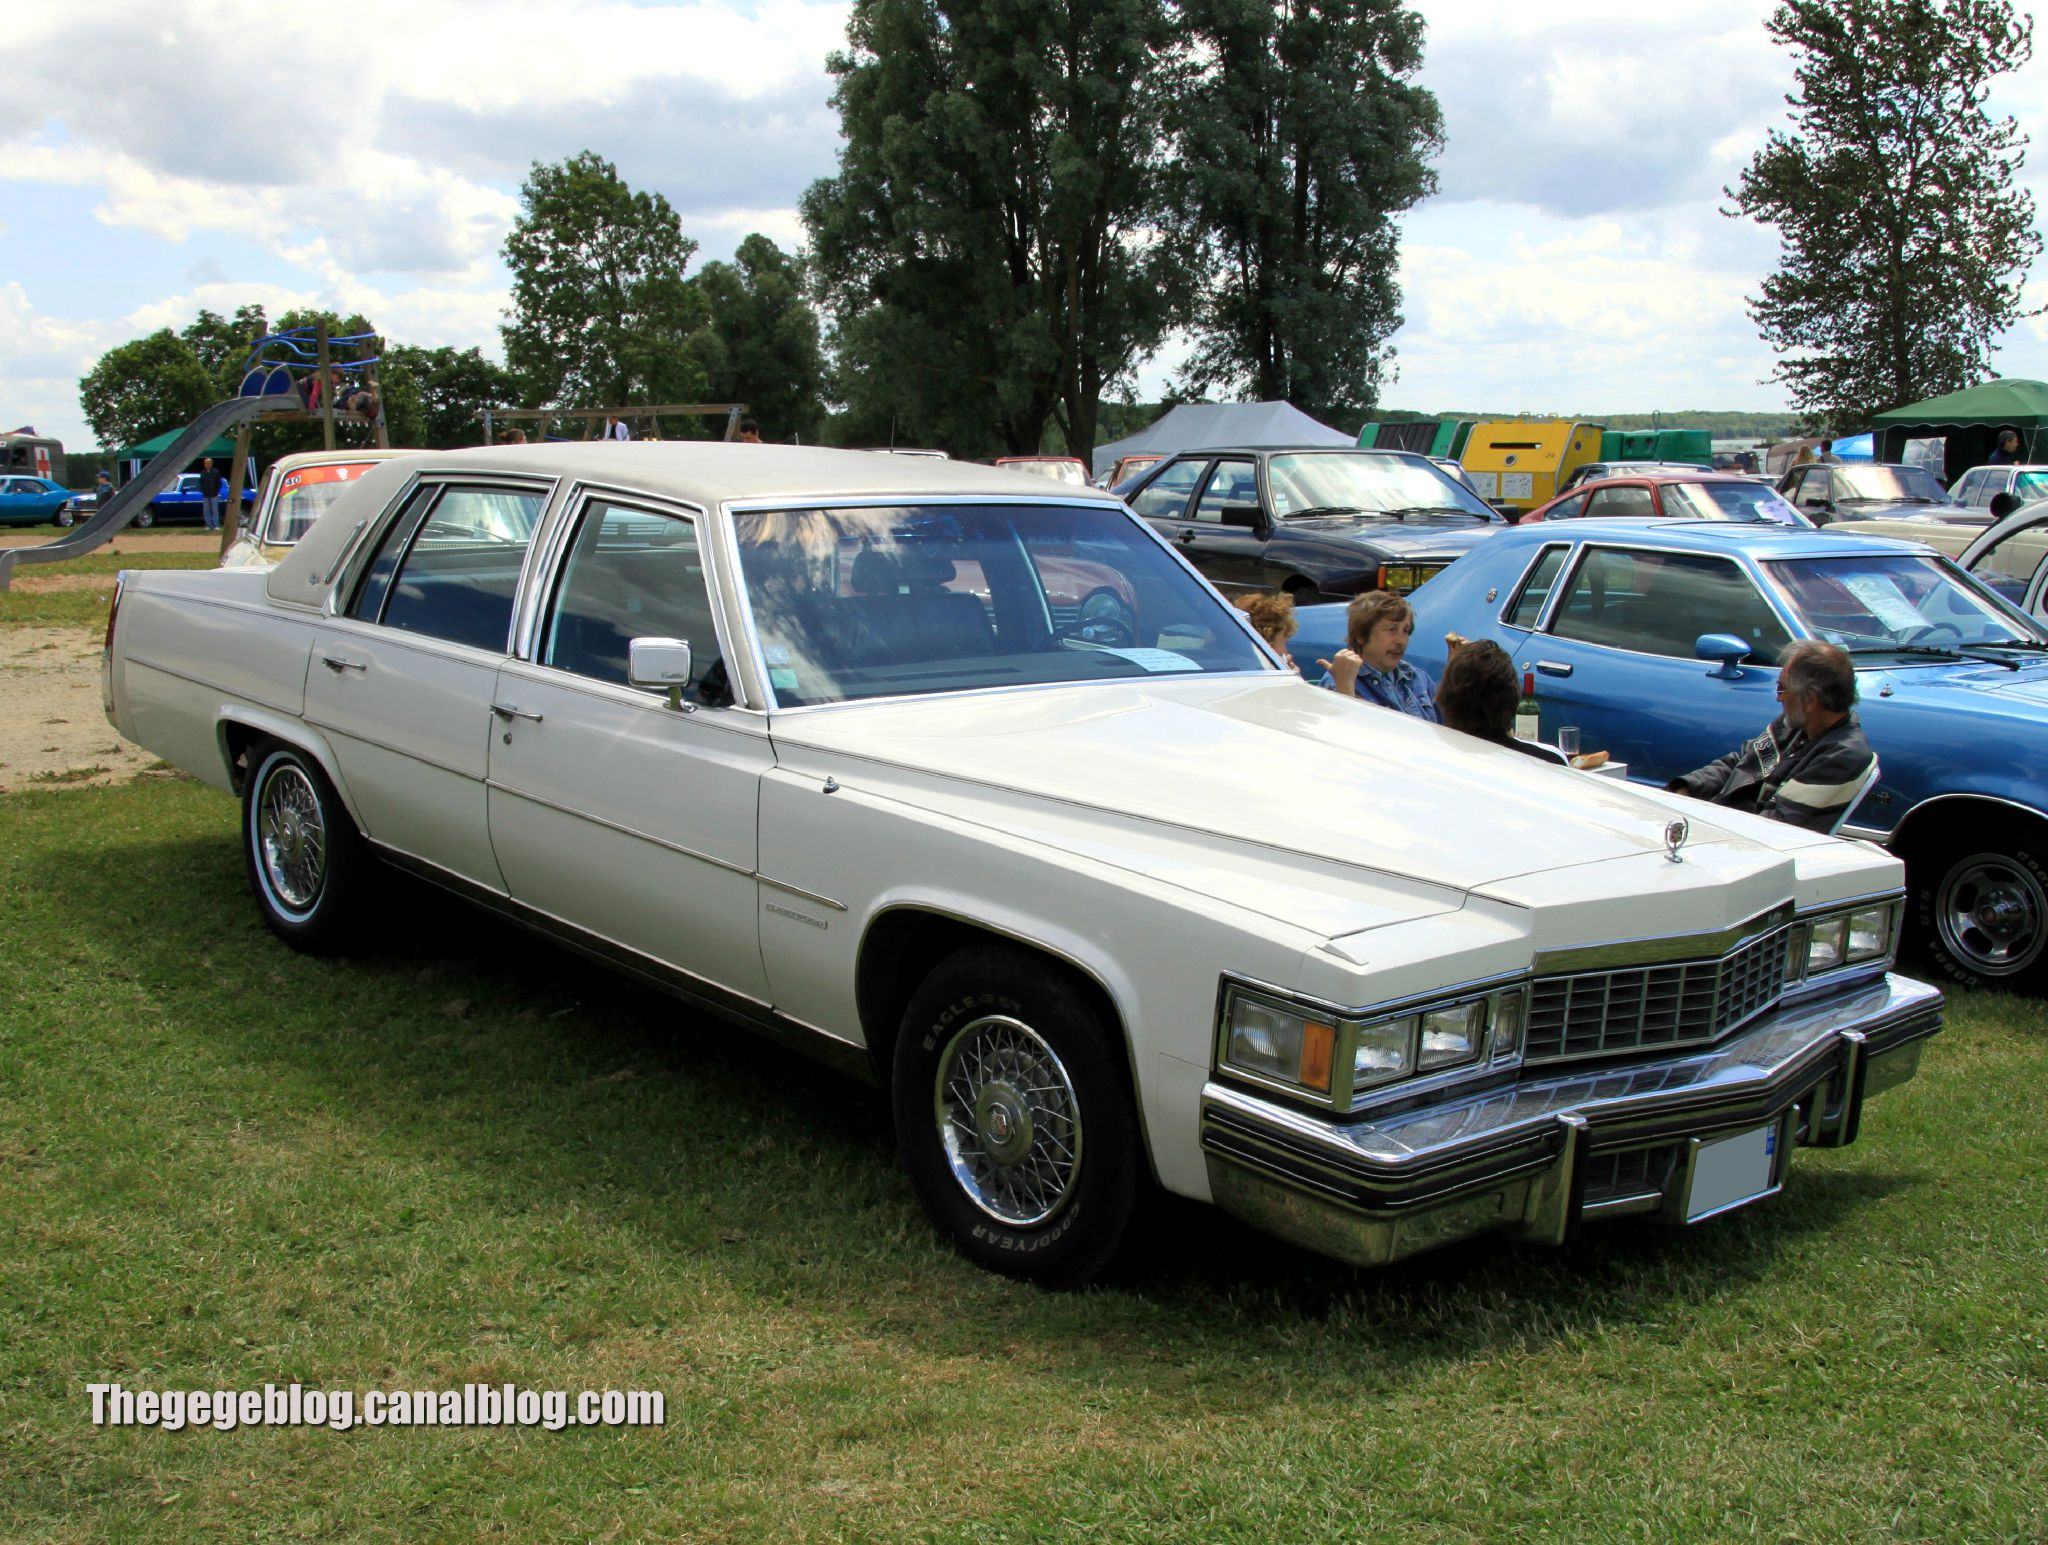 Cadillac Fleetwood : Tous les messages sur Cadillac Fleetwood - The ...